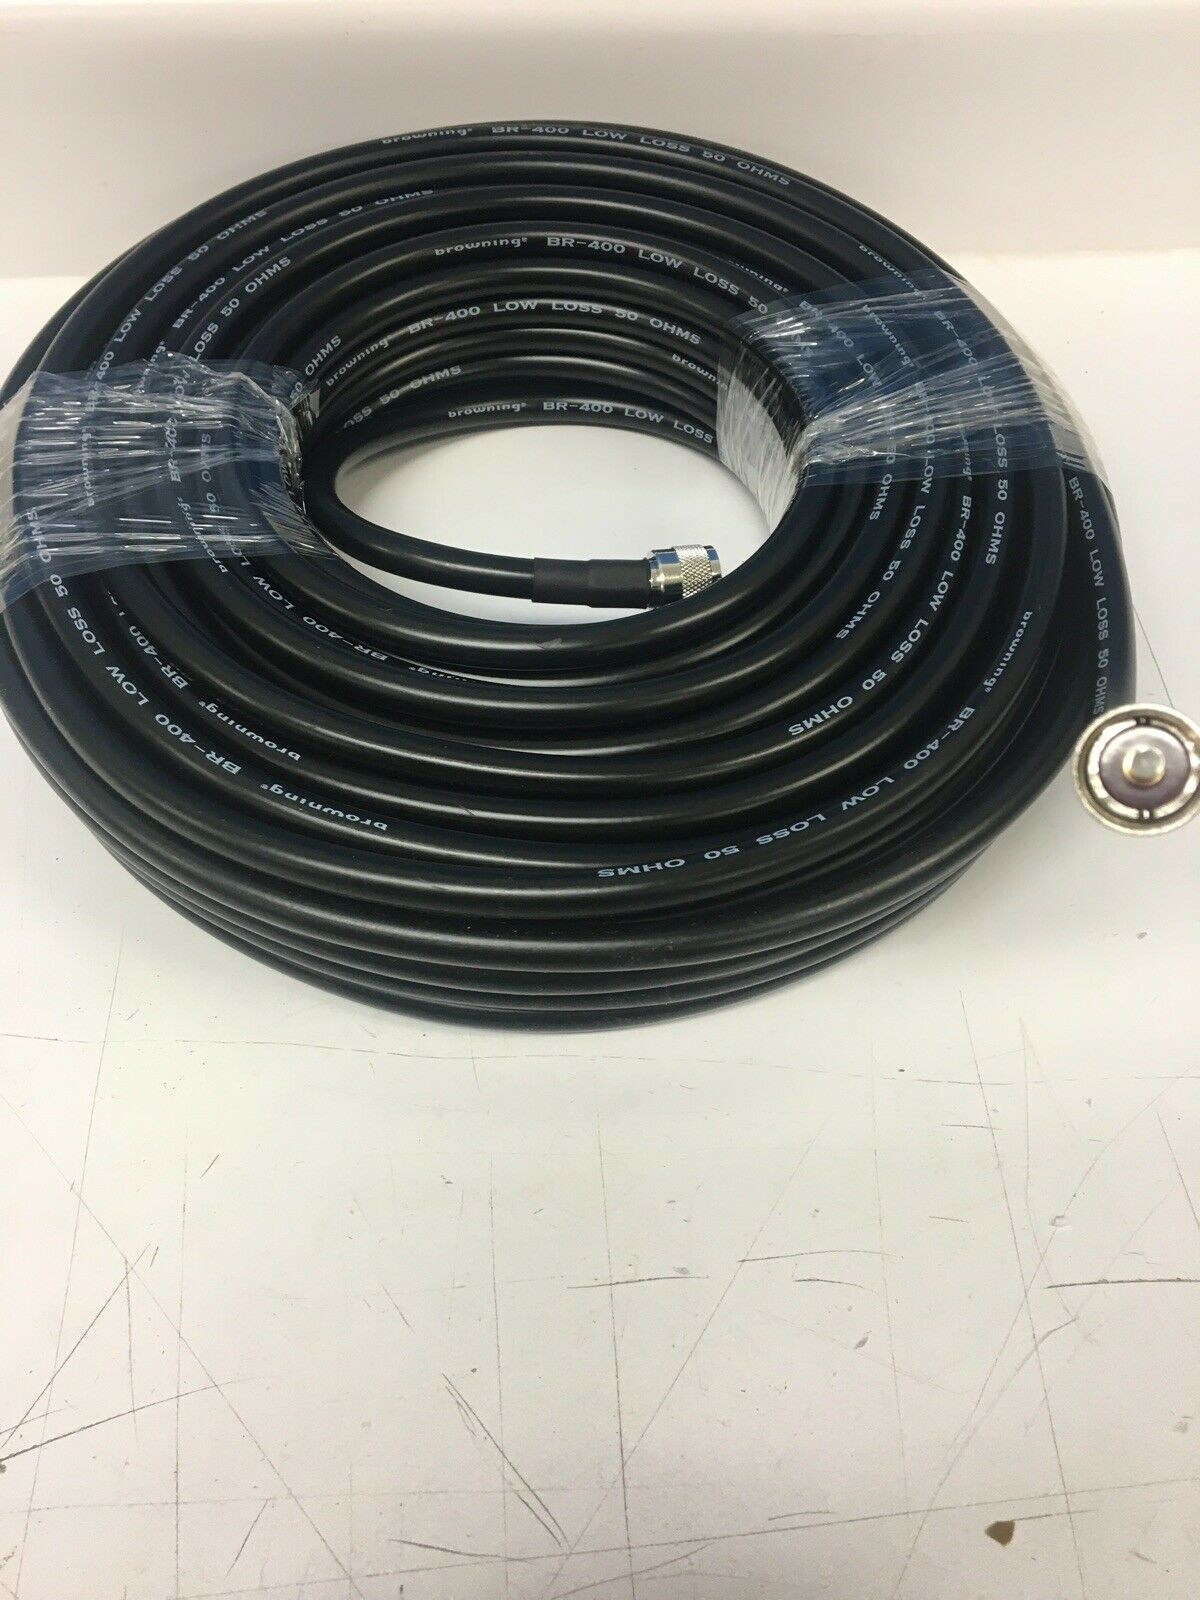 LMR-400 100' Super Low Loss High Power Coax Cable Browning USA PL-259 To PL-259. Buy it now for 110.00